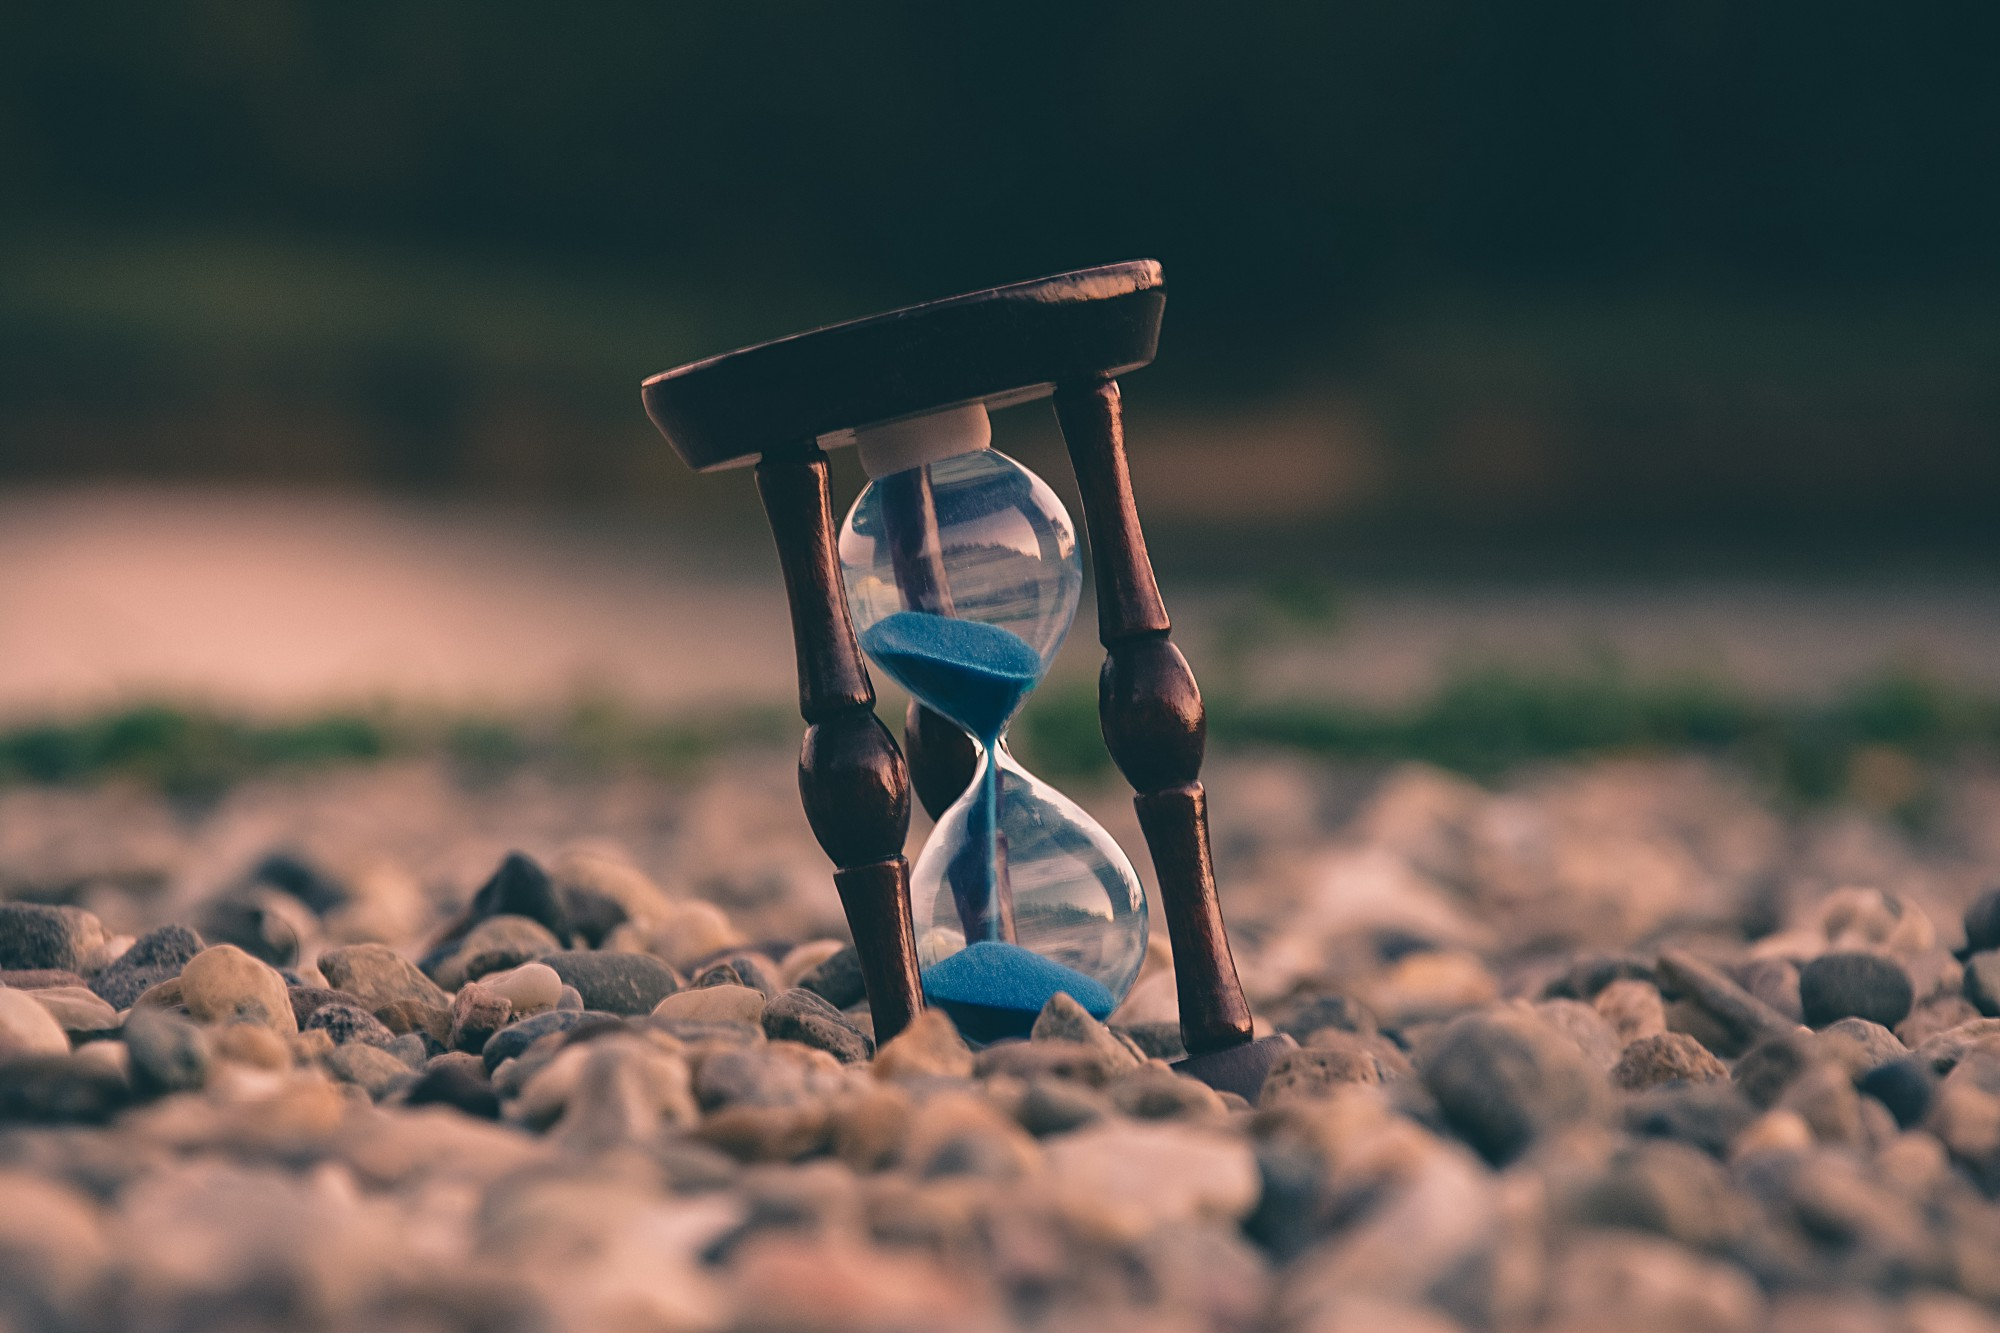 An hourglass with blue sand pouring through it, placed on a rocky pebble-like surface.